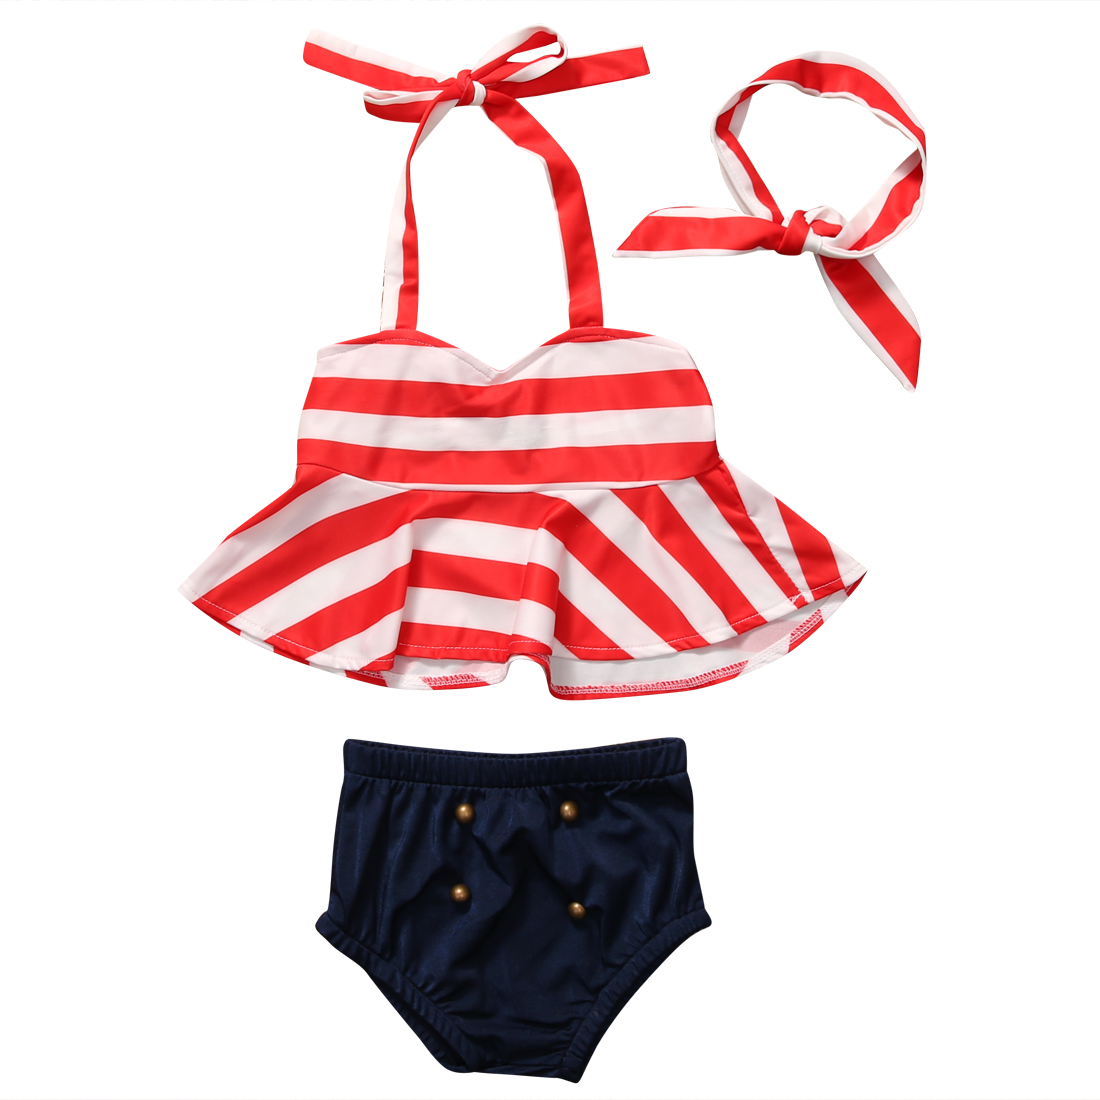 3PCS Stripe Summer Toddler Kids BabyGirls Swimsuit Cute Swimwear Bathing Suit Tankini Bikini Set clothing sets